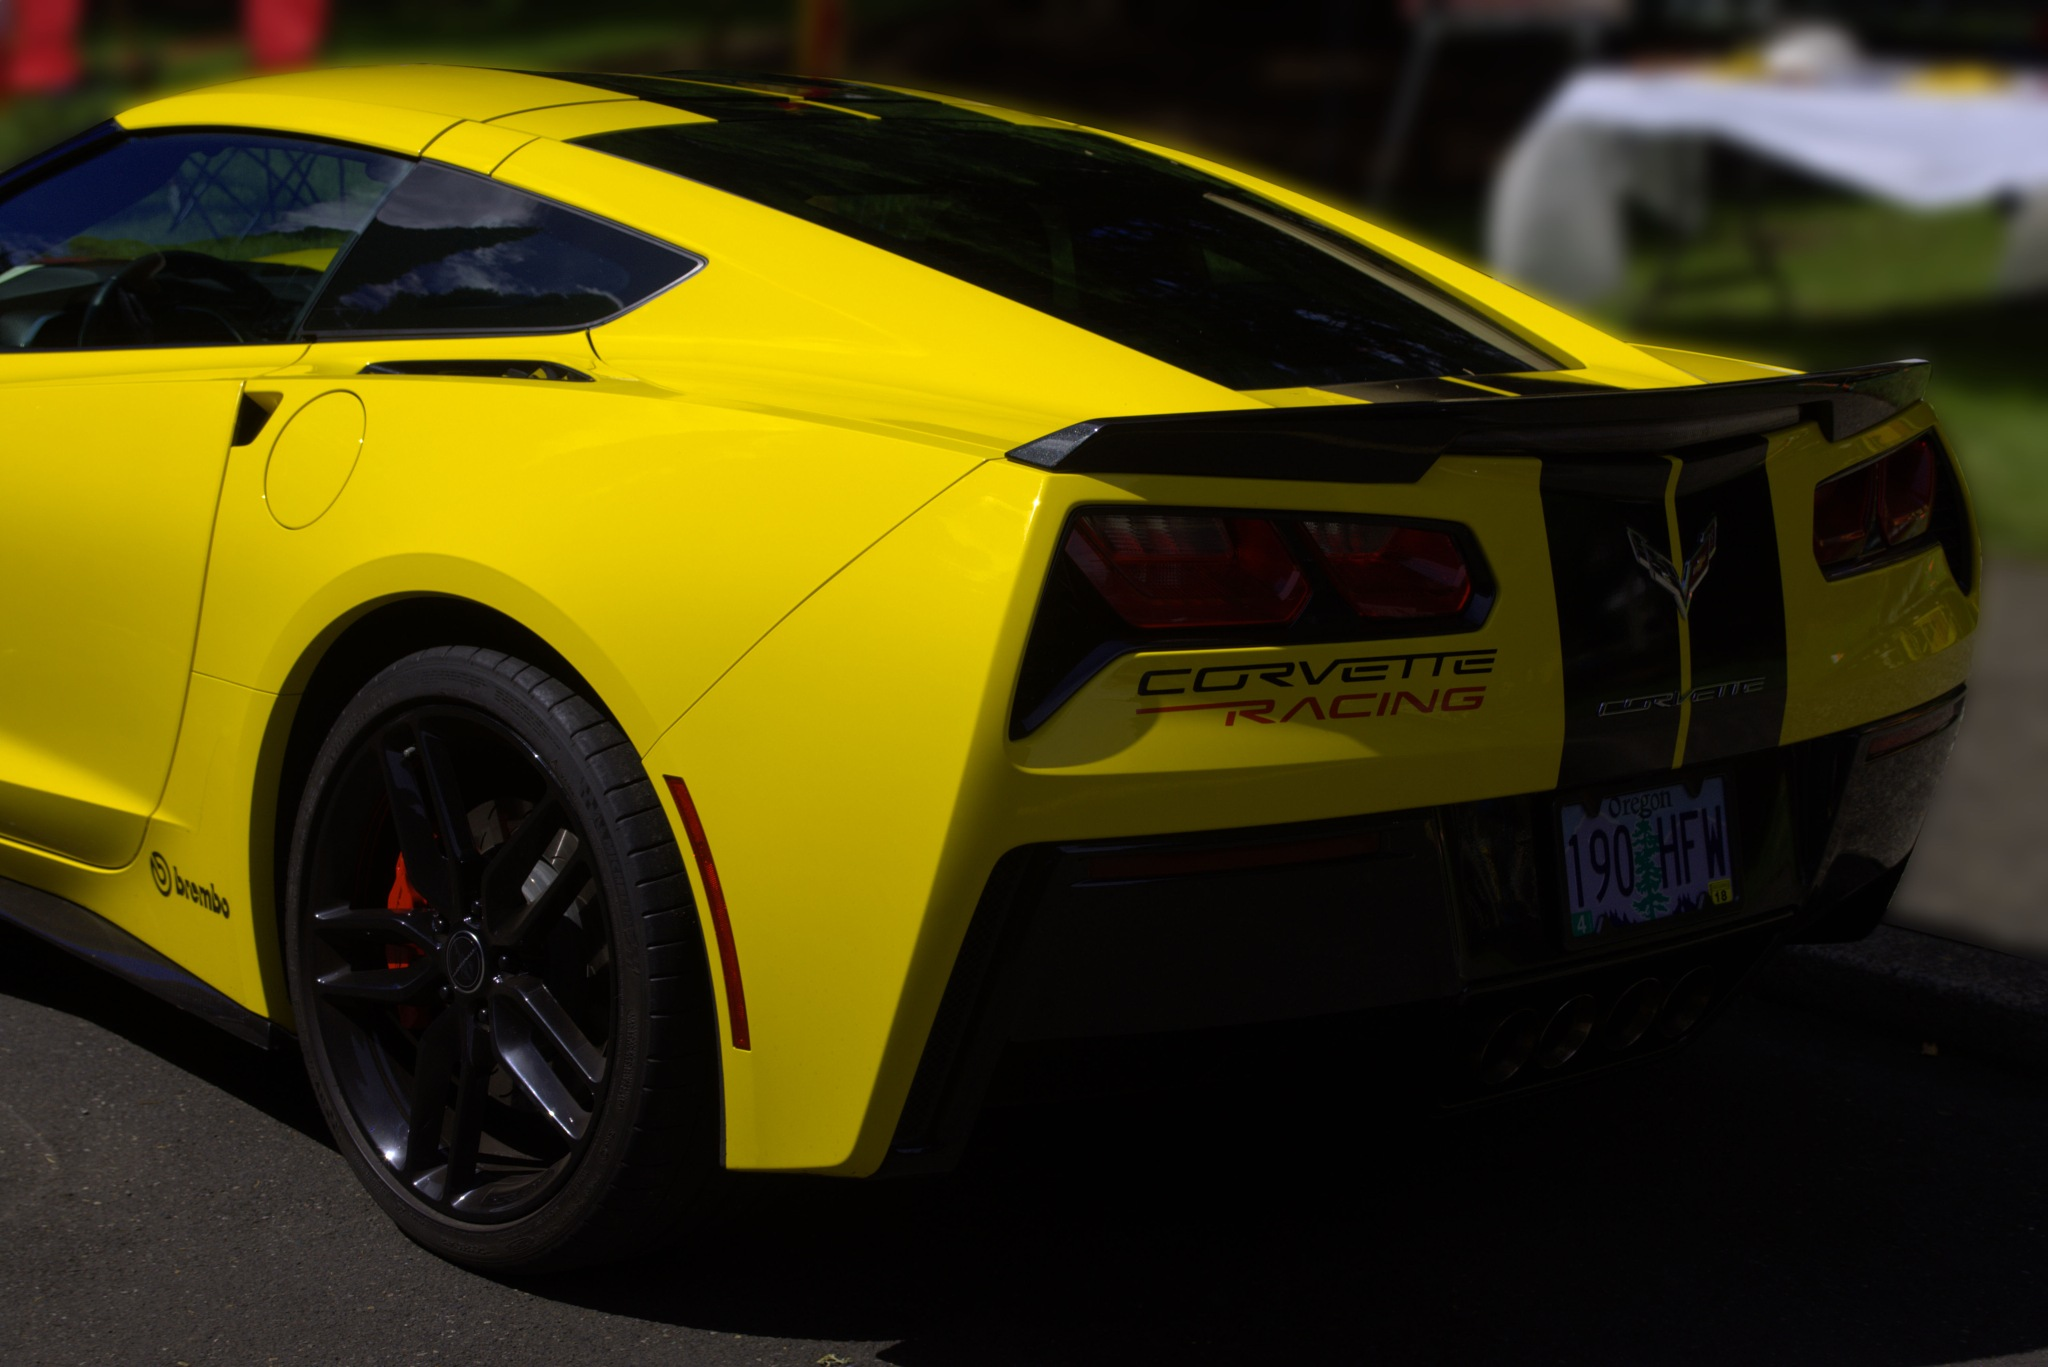 Corvette Racing by pscottwong